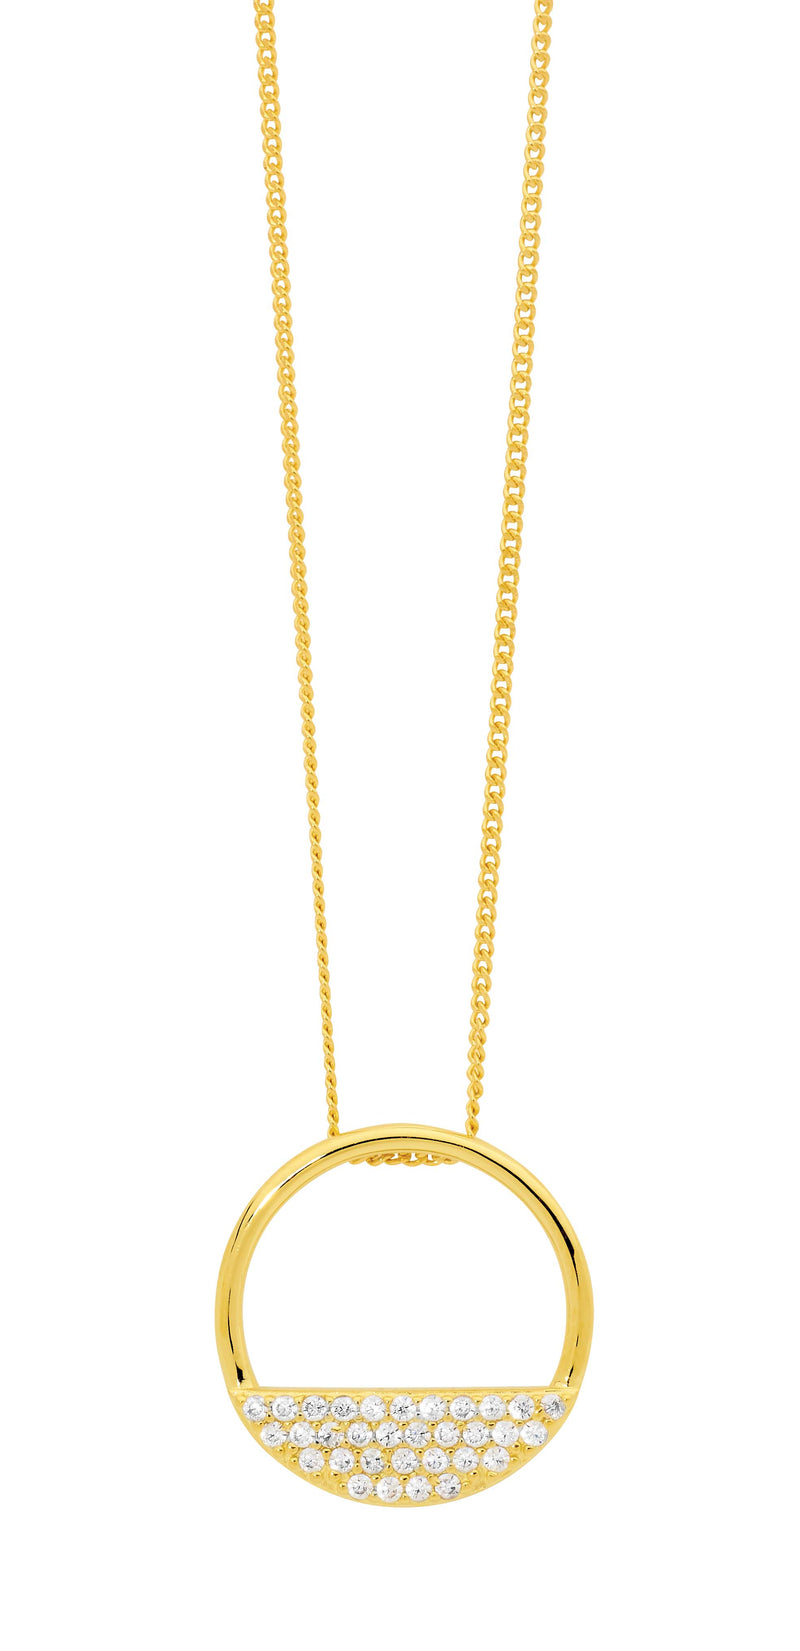 Ellani  Stg Silver 28MM OPEN CIRCLE PENDANT, 3 ROWS WH CZ W/ GOLD PLATING